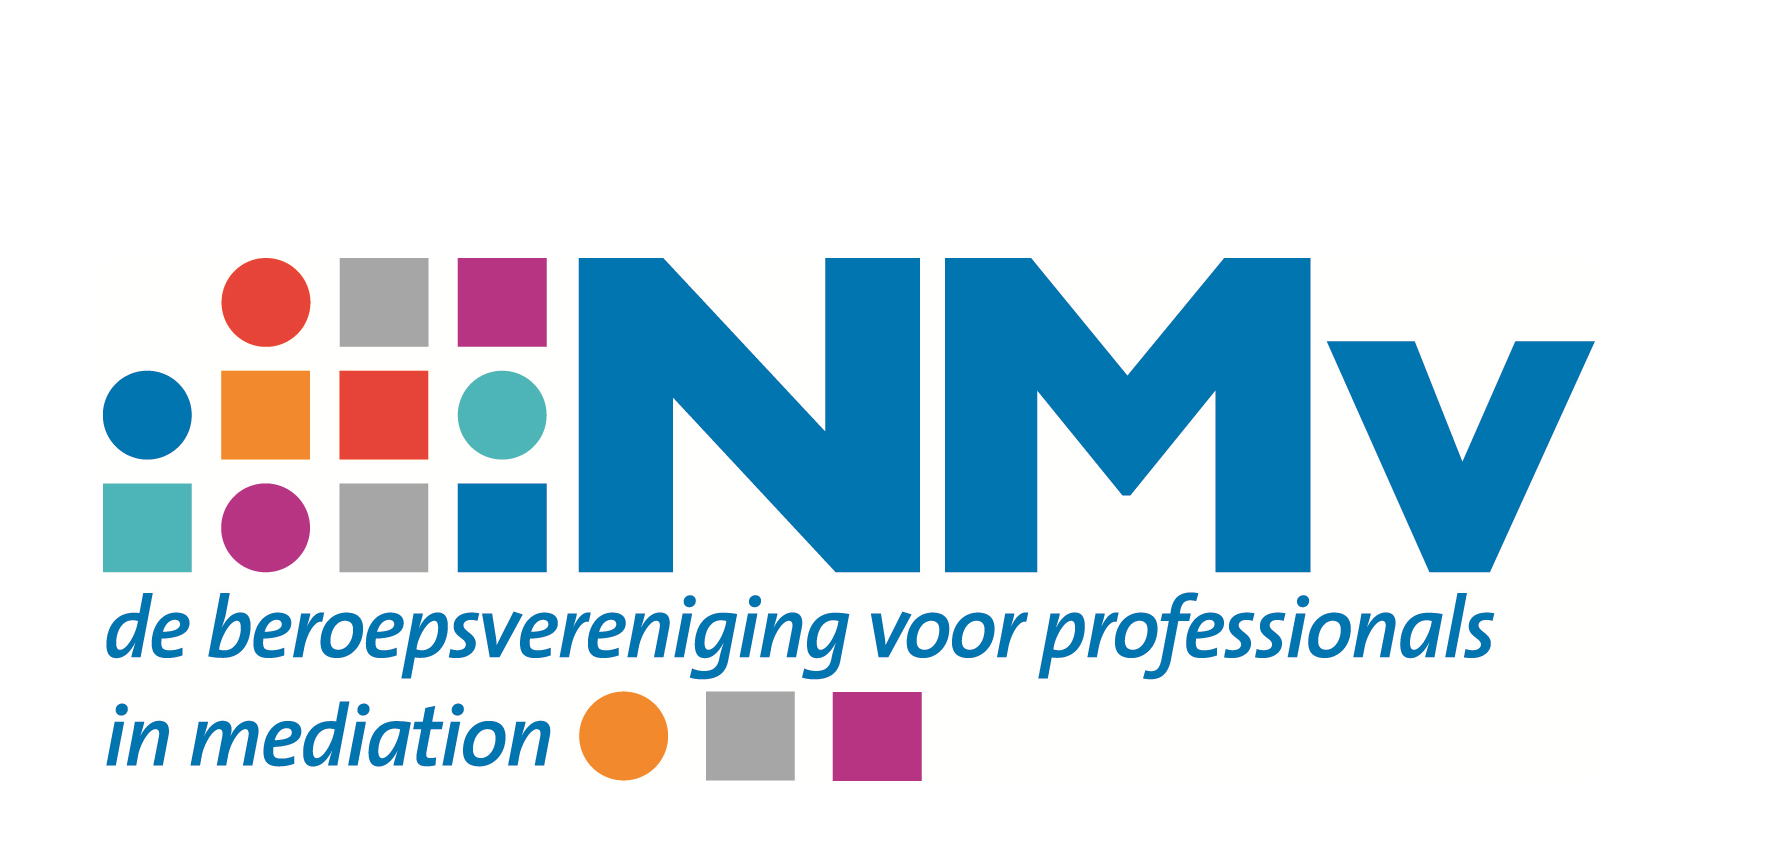 Nederlandse Mediatorsvereniging (NMv)